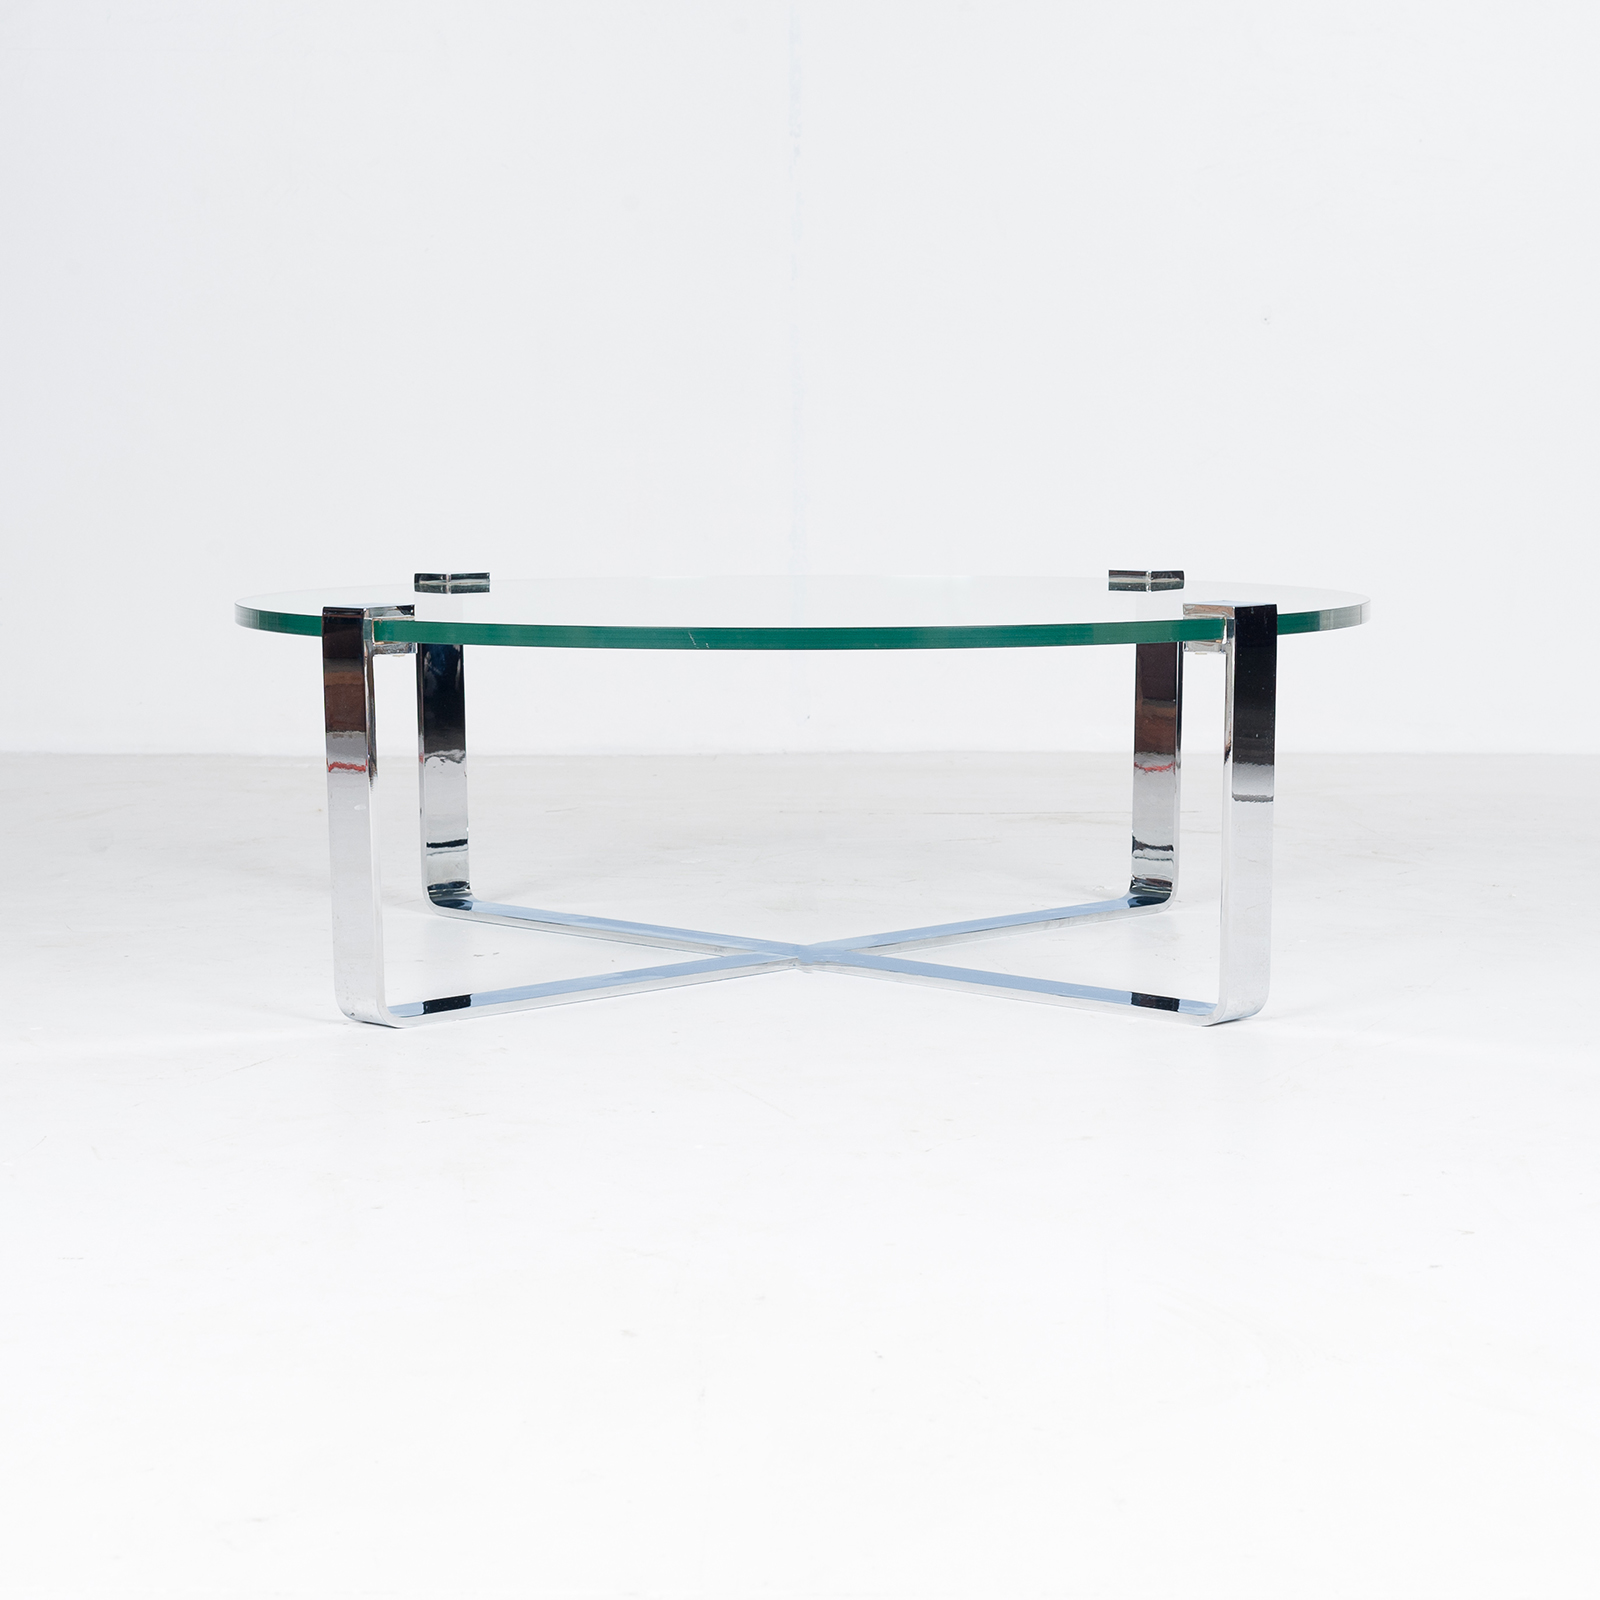 Round Coffee Table In Glass And Polished Chrome By Friedrich Wilhelm Moller For Ronald Schmitt, 1970s, Germany64